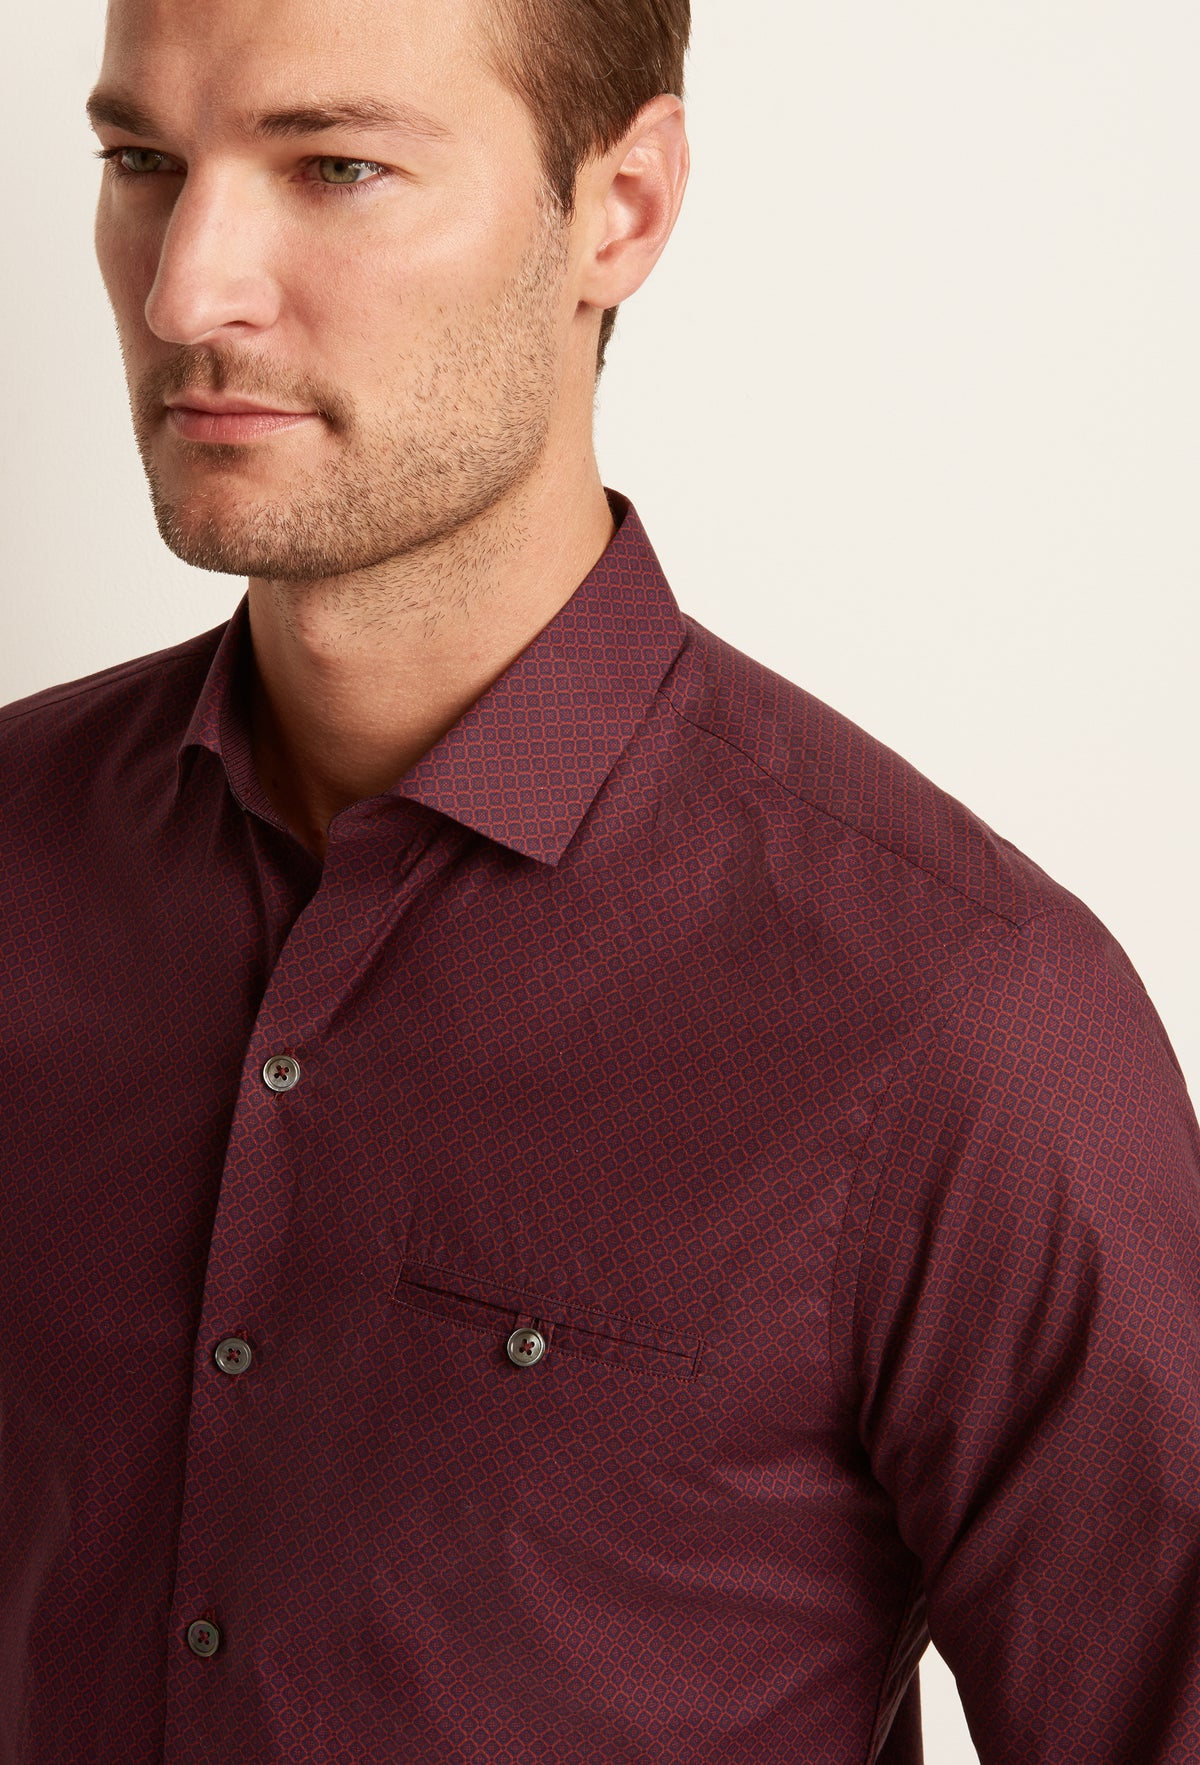 ZACHARY-PRELL-Shamus-ShirtsModern-Menswear-New-Dress-Code